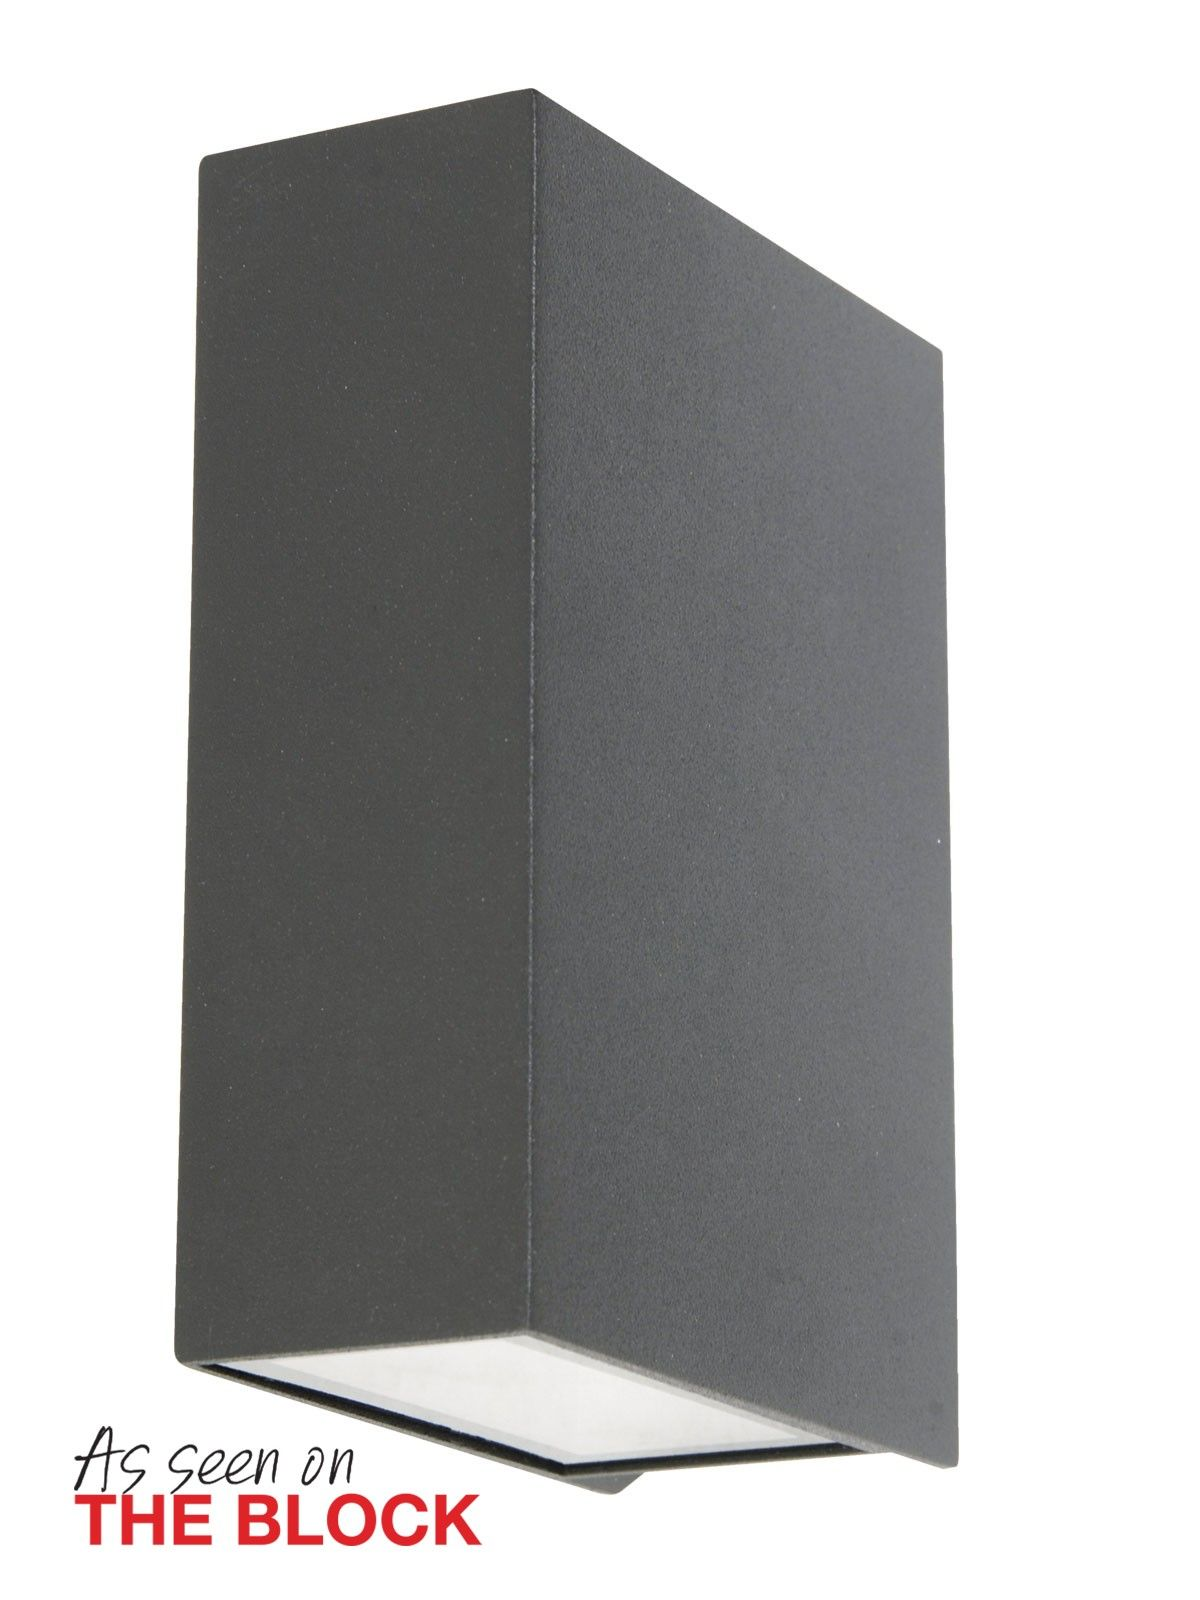 Ledlux Vice 6w Square Up Down Wall Bracket In Charcoal